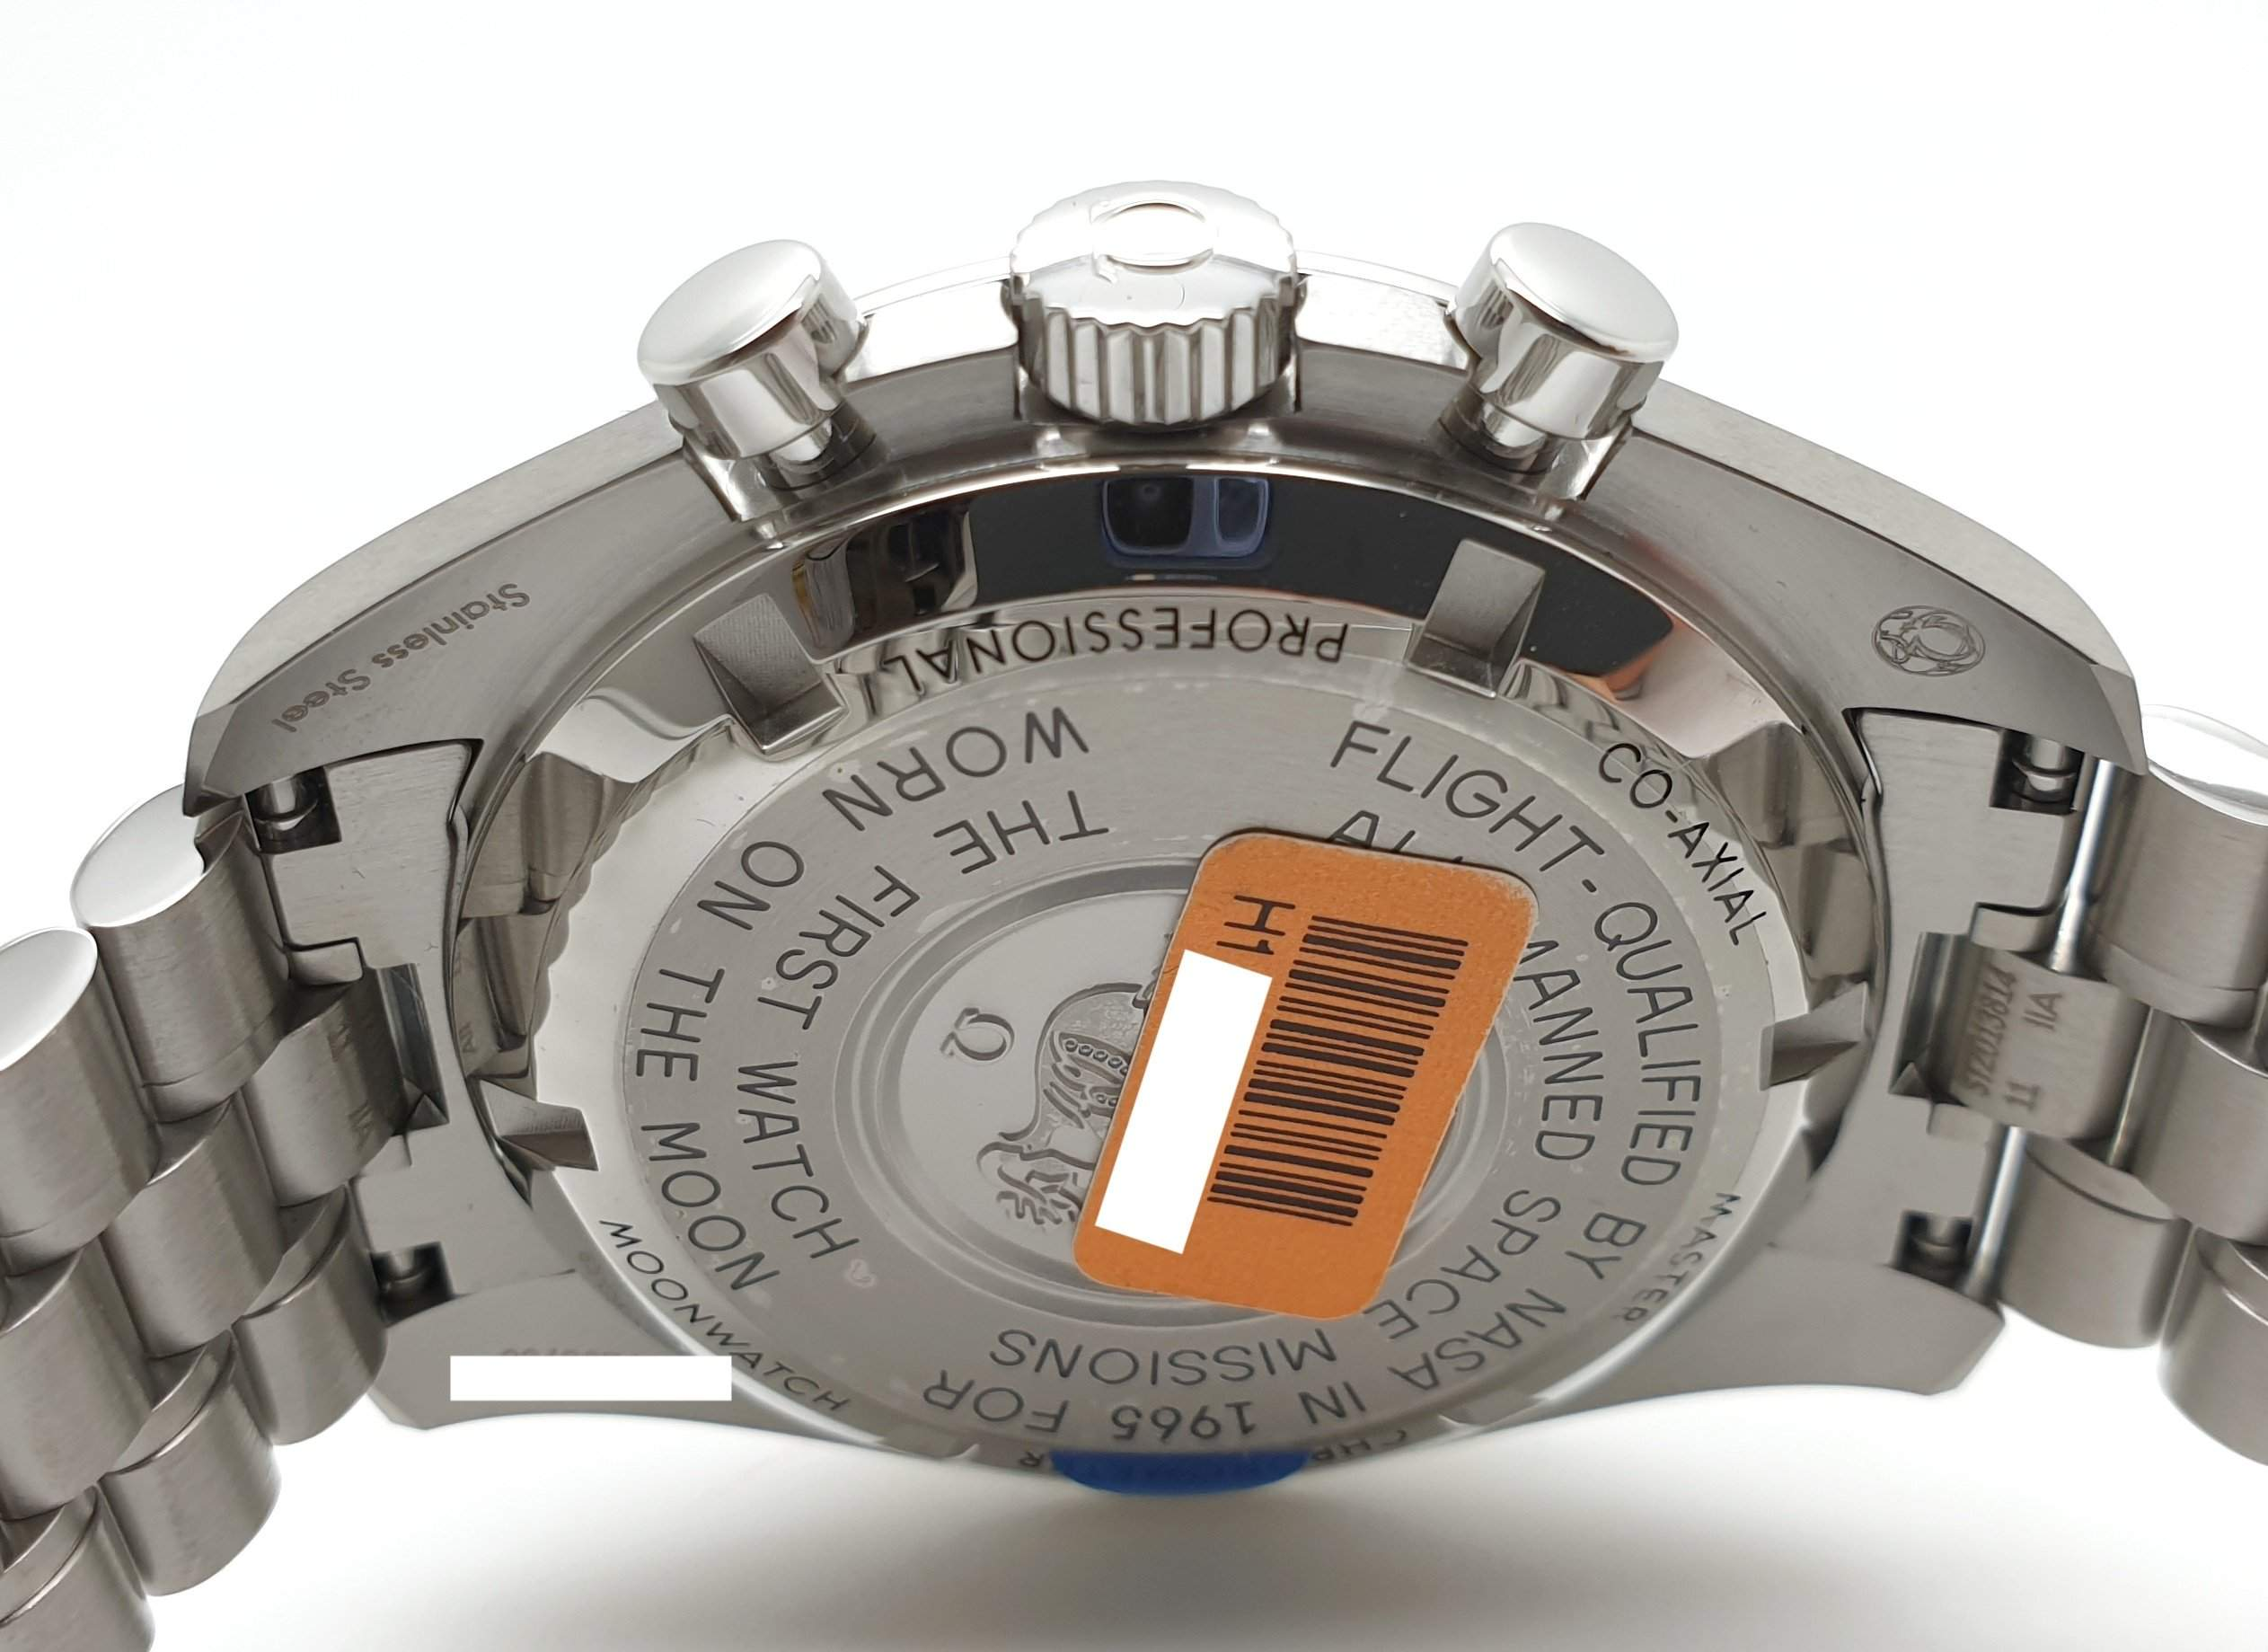 Omega's Master Chronometer caliber 3861 is the beating heart of the latest Moonwatch models.